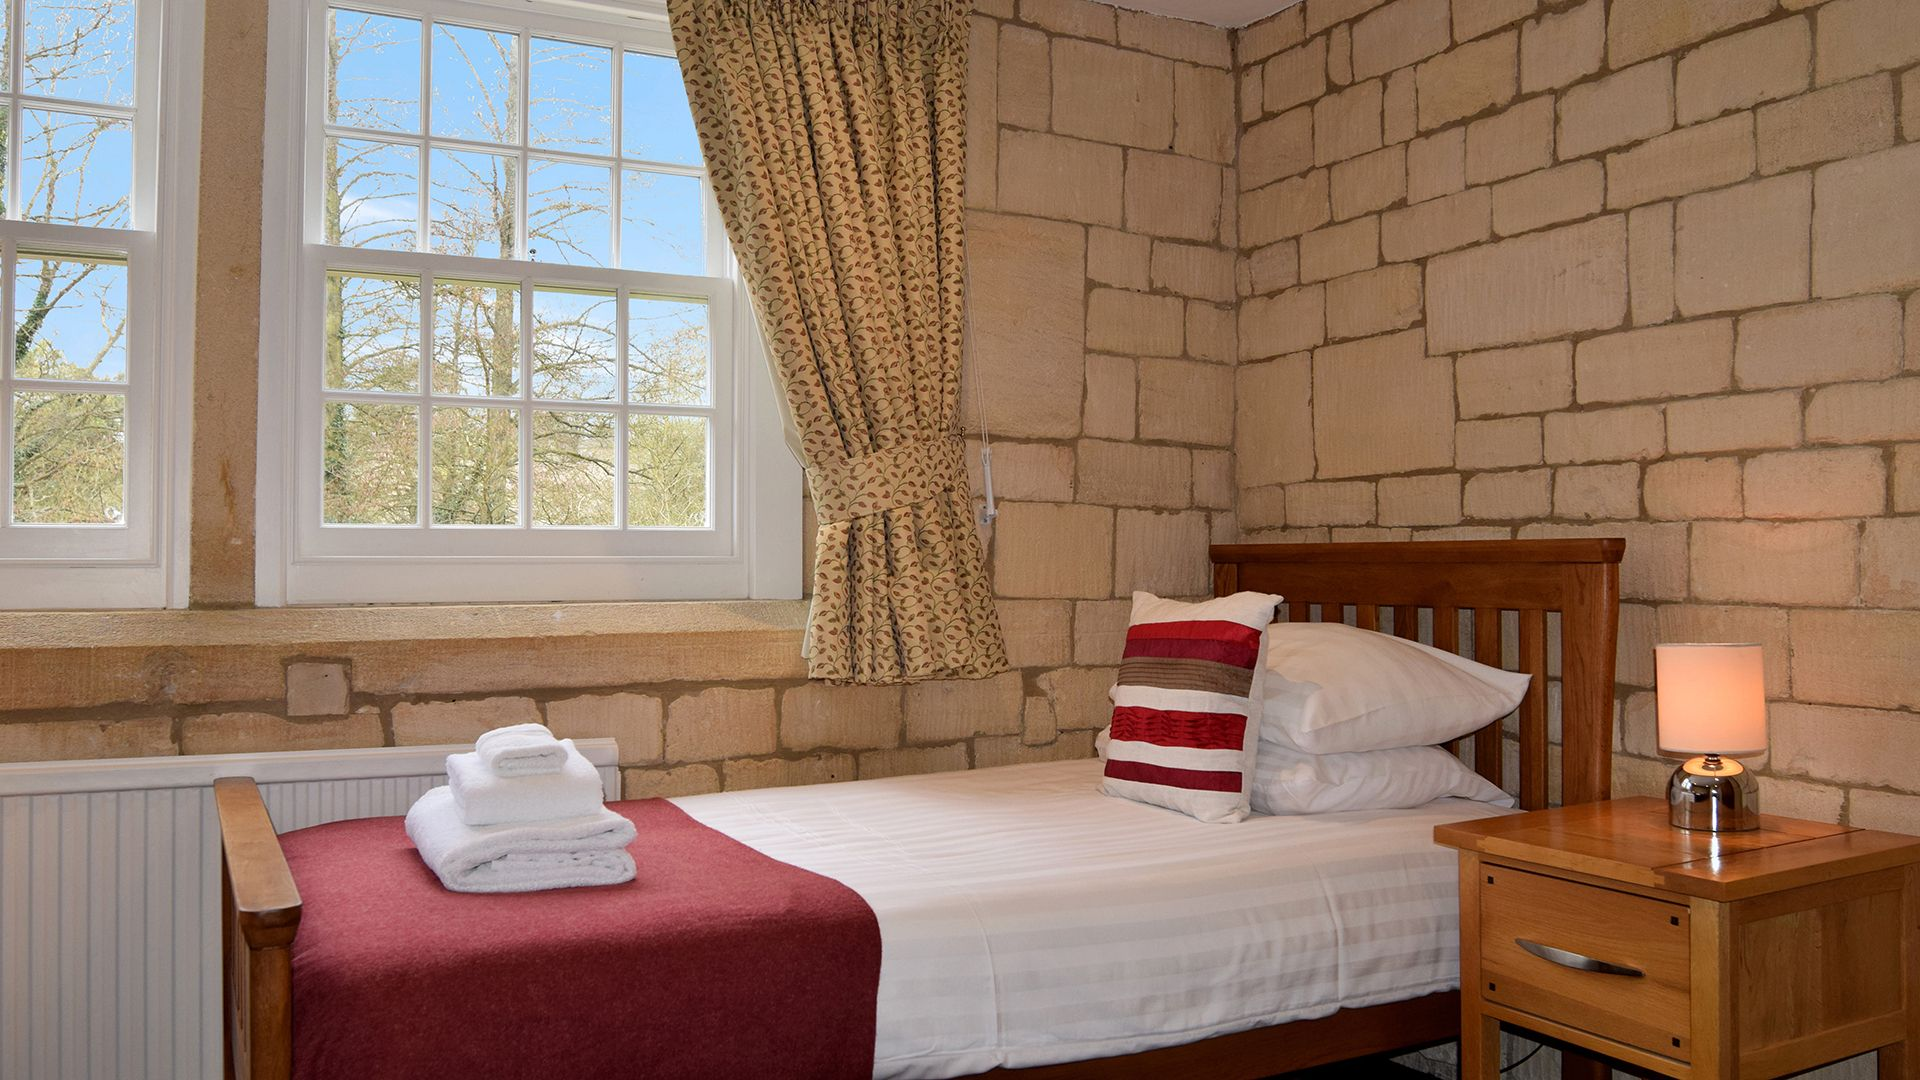 Twin bedroom, Lady Jane Grey Cottage at Sudeley Castle, Bolthole Retreats